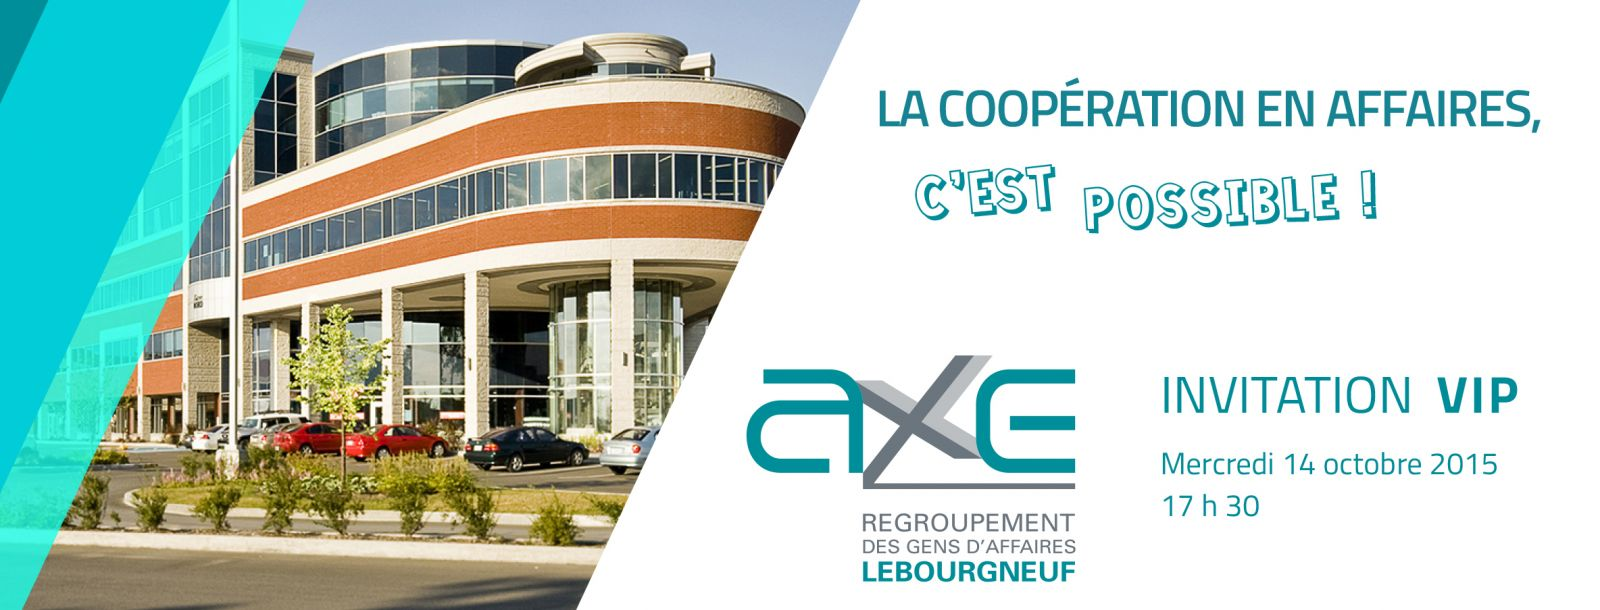 La cooperation en affaires cest possible